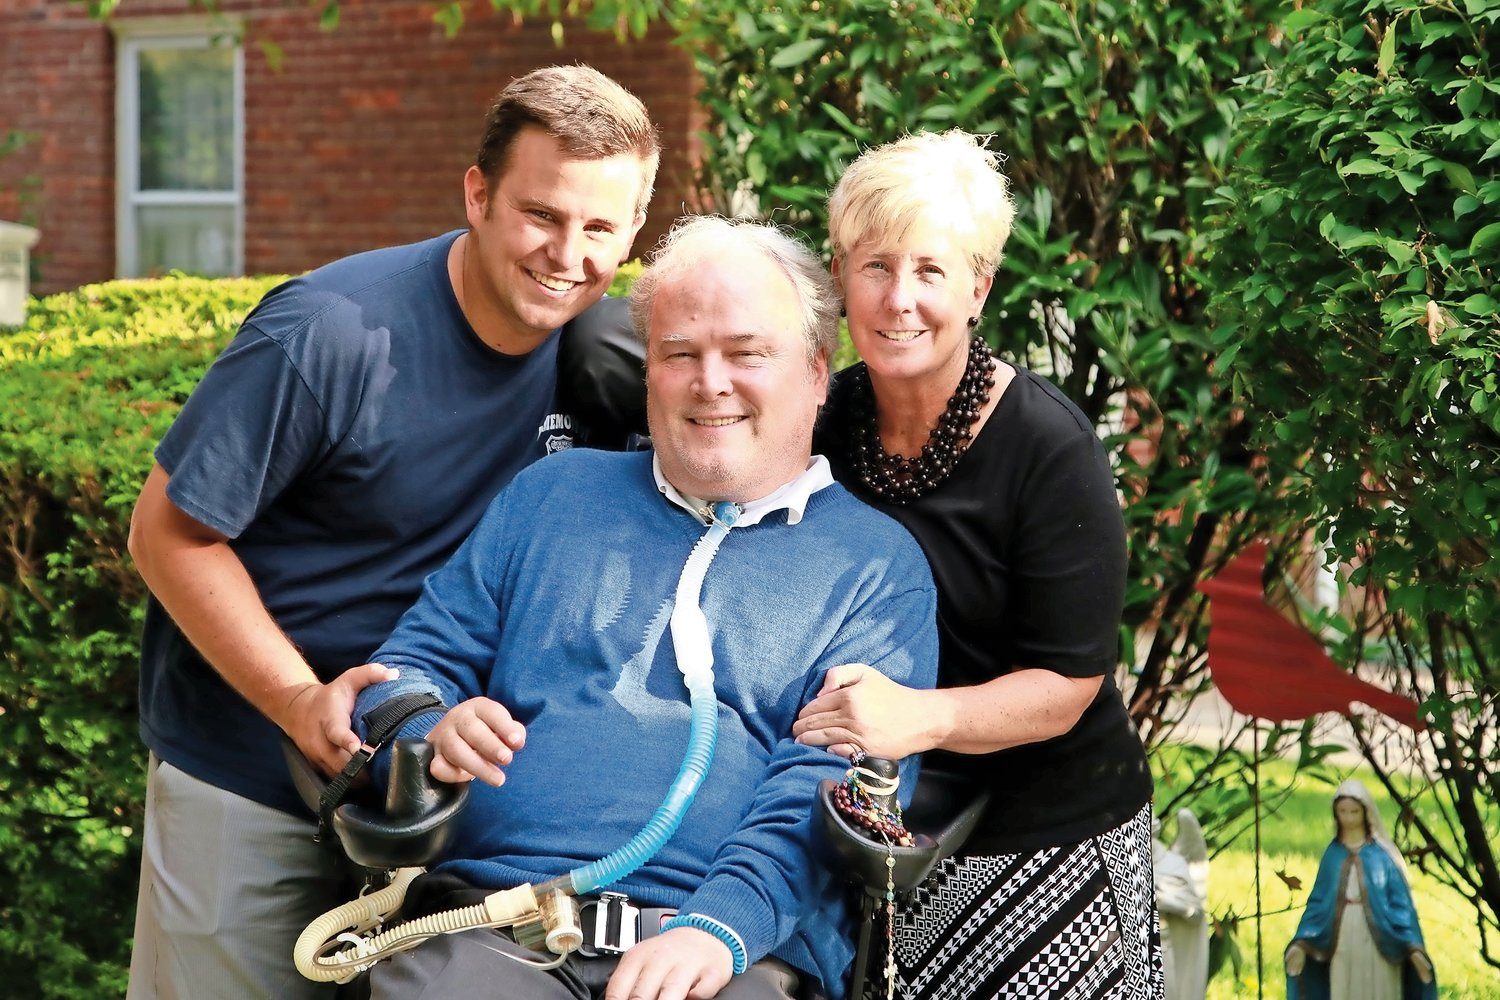 NYPD Detective Steven McDonald, center, with his wife, Patti, and their son, NYPD Sgt. Conor McDonald.